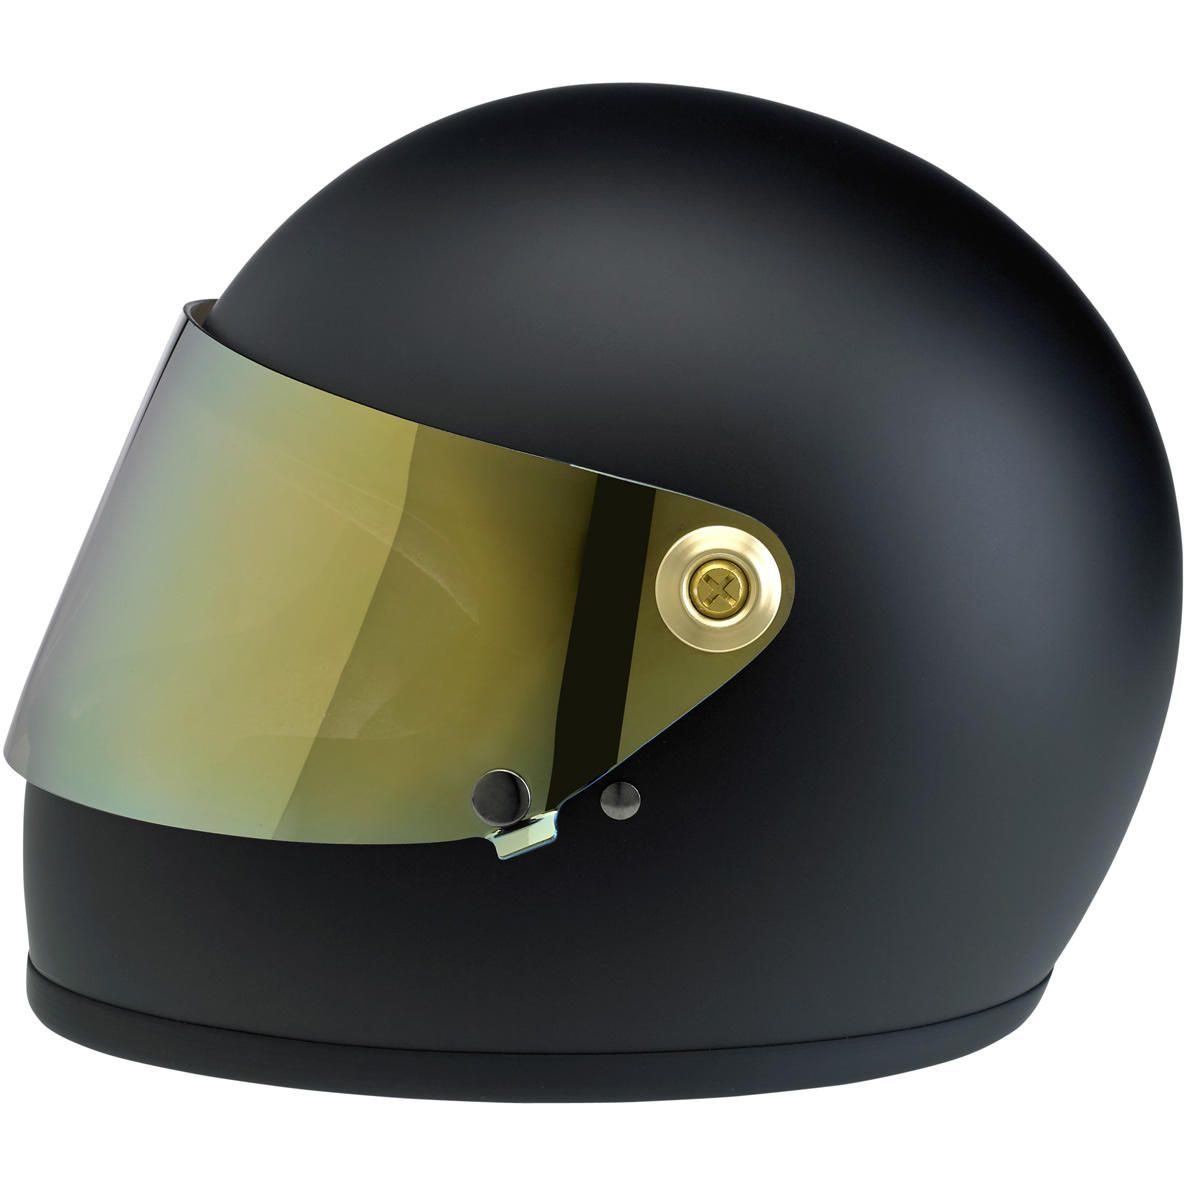 We�ve always believed the subtle details can be some of the loudest statements you can make. Whether it�s spending an extra hour smoothing a part to perfection on the Scotchbrite wheel, hammering a microscopic detail into leather or dialing in your Biltwell Gringo S or Lane Splitter helmet by simply swapping out some hardware.